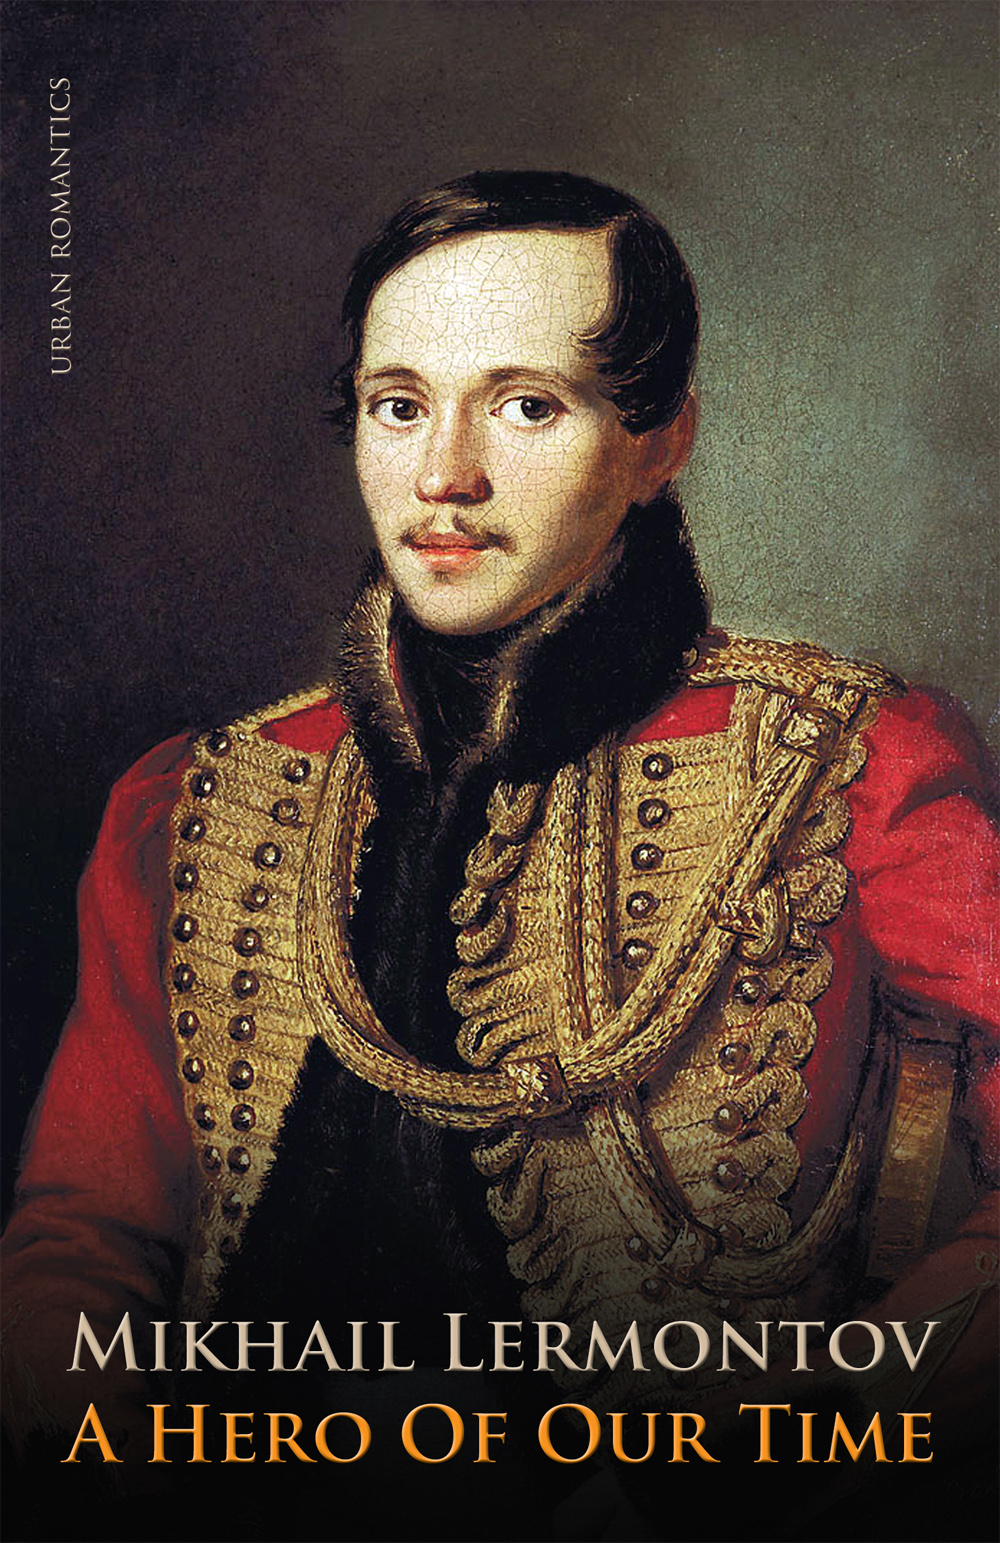 Lermontov, Hero of Our Time: description of heroes 59